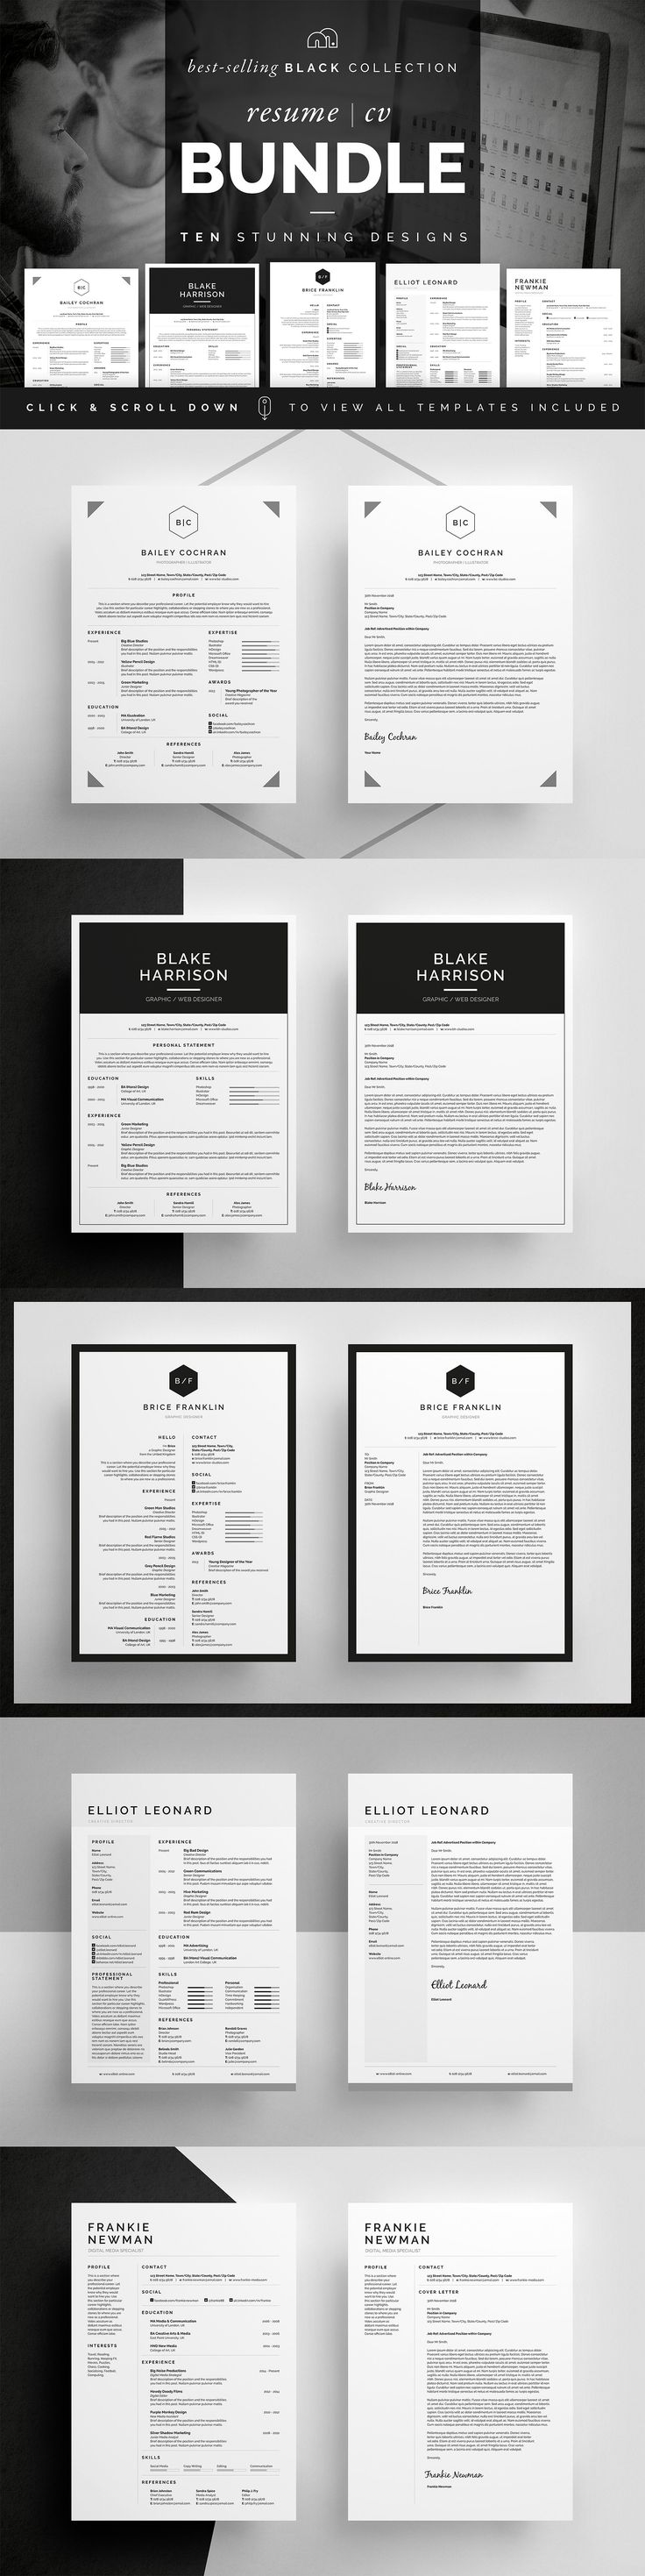 Resume/CV Bundle - Black Collection by bilmaw creative on @creativemarket All artwork and text is fully customisable; Easily edit the typography, wording, colors and layout. Each template uses a strong baseline/document grid which will allow you to edit or add to the layout very easily.